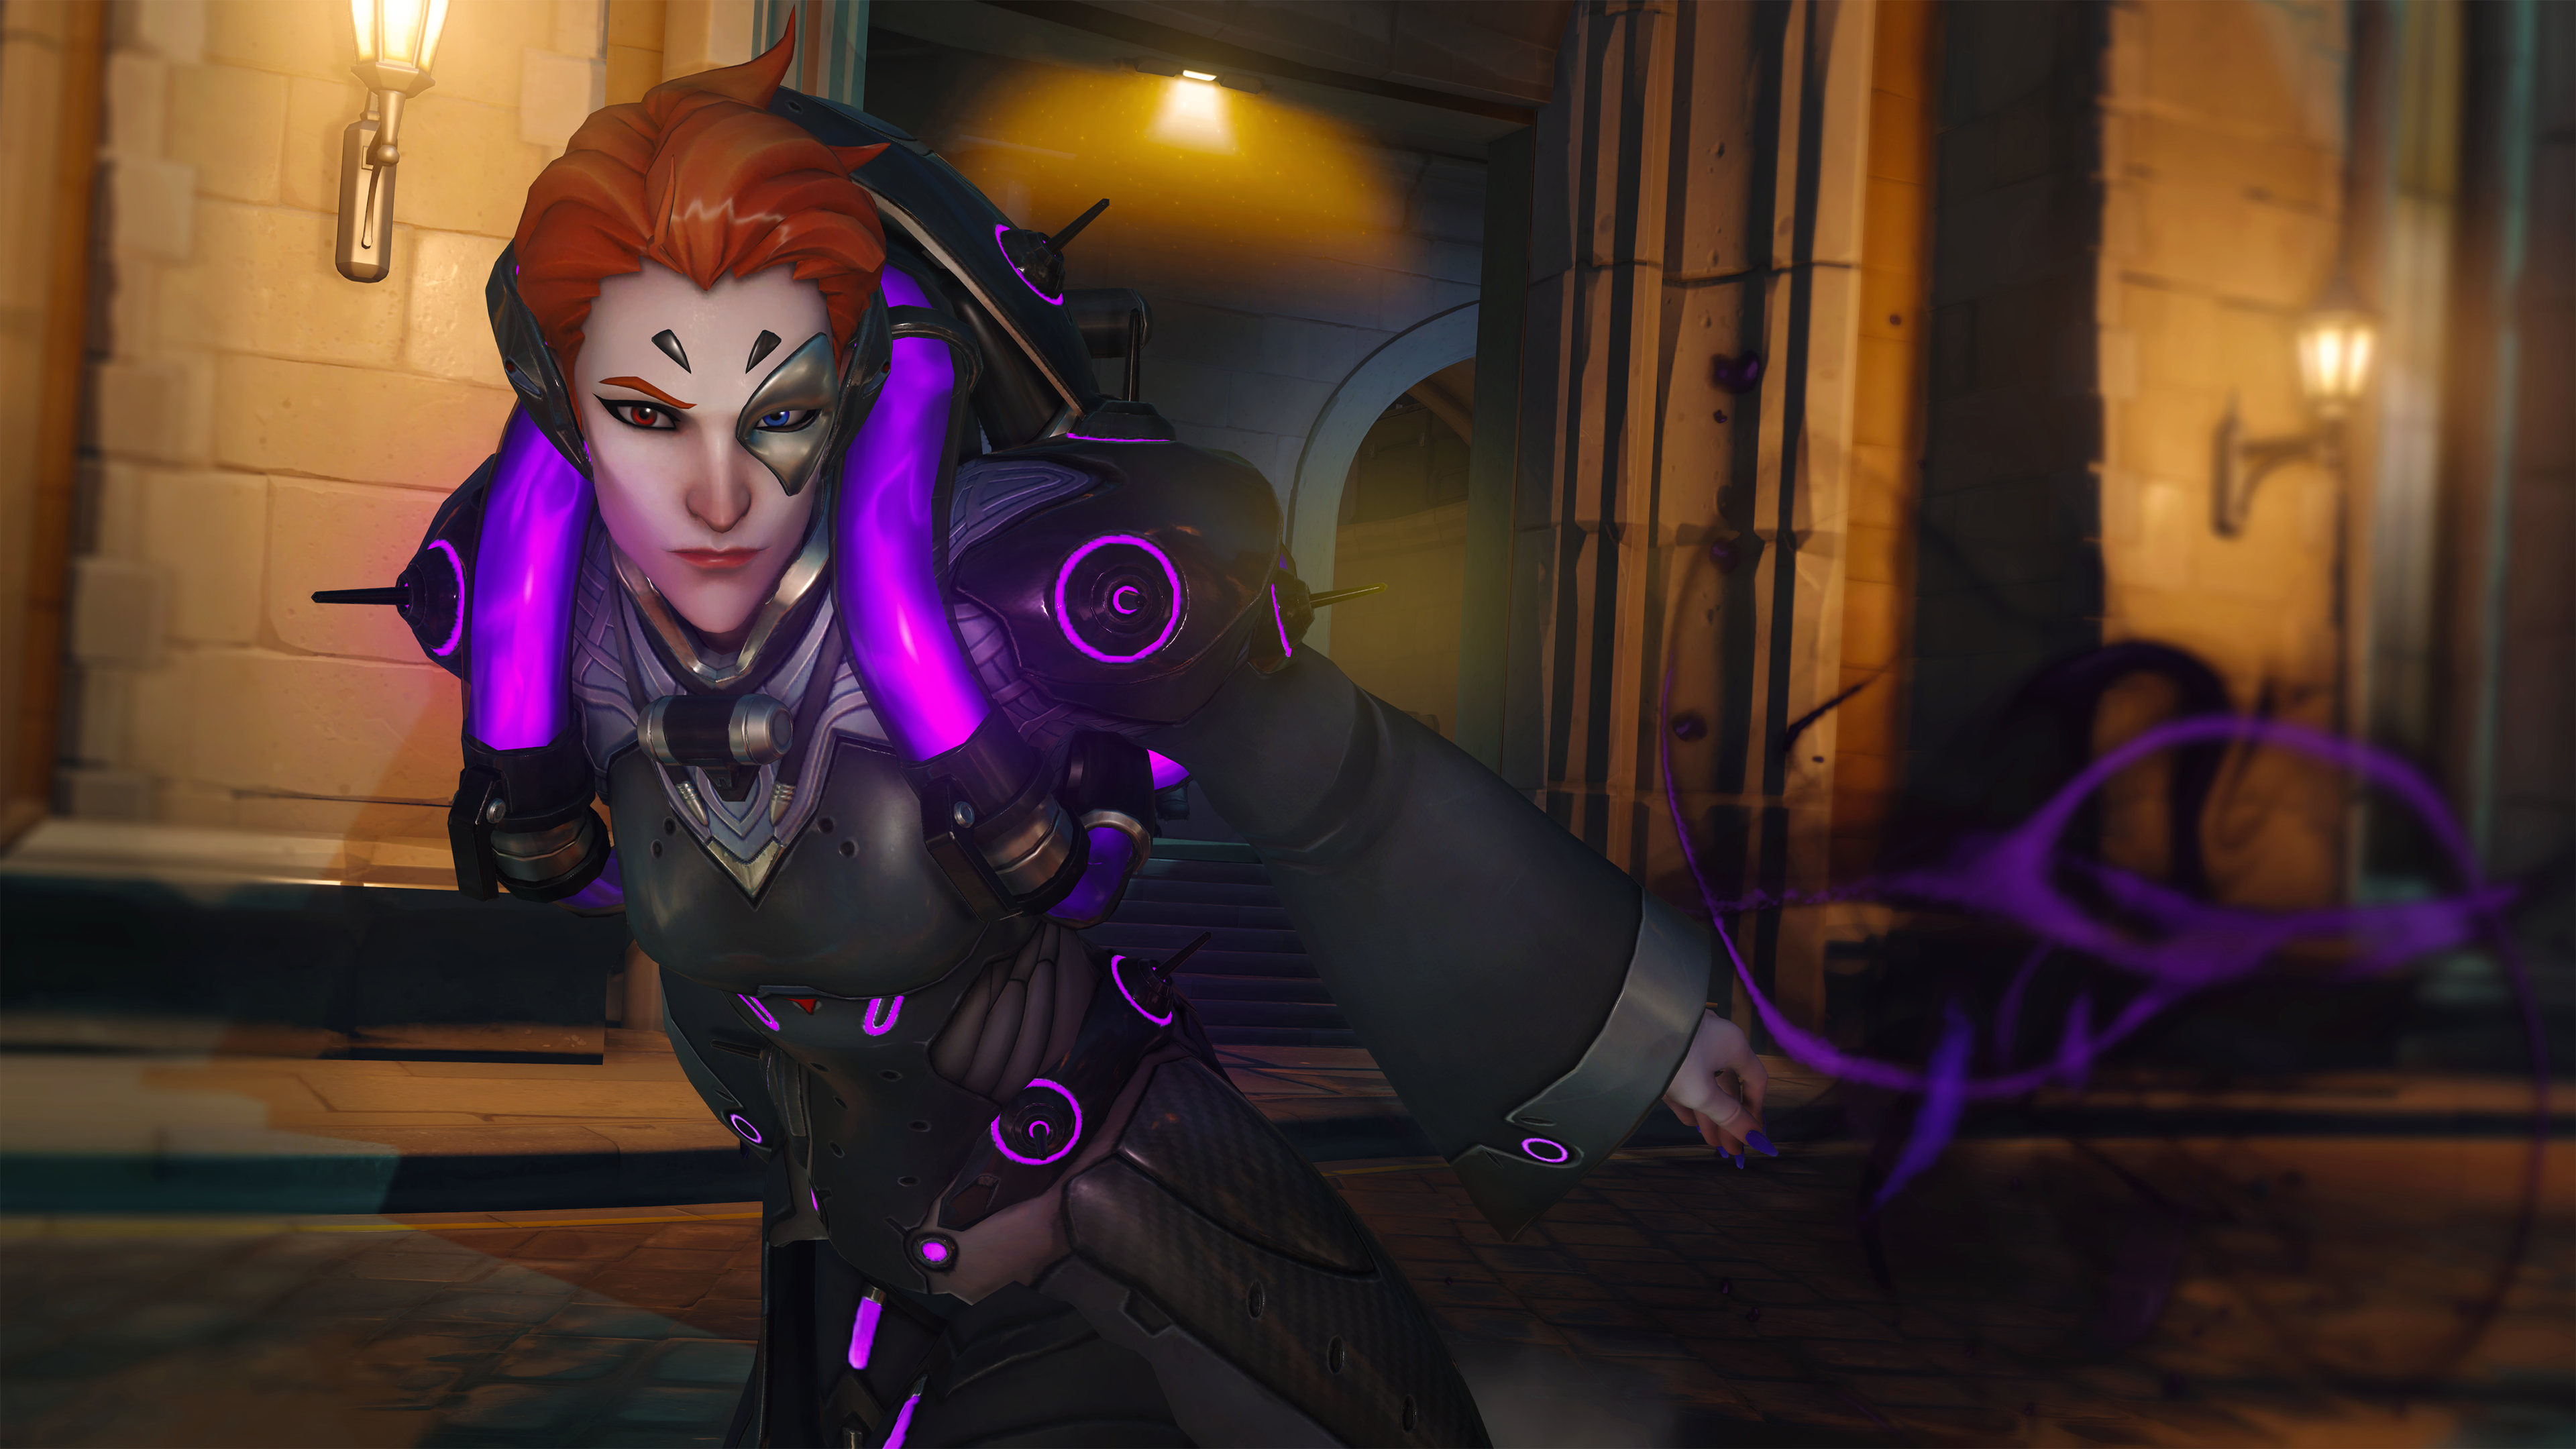 Overwatch players protested latest Moira change, and Blizzard listened